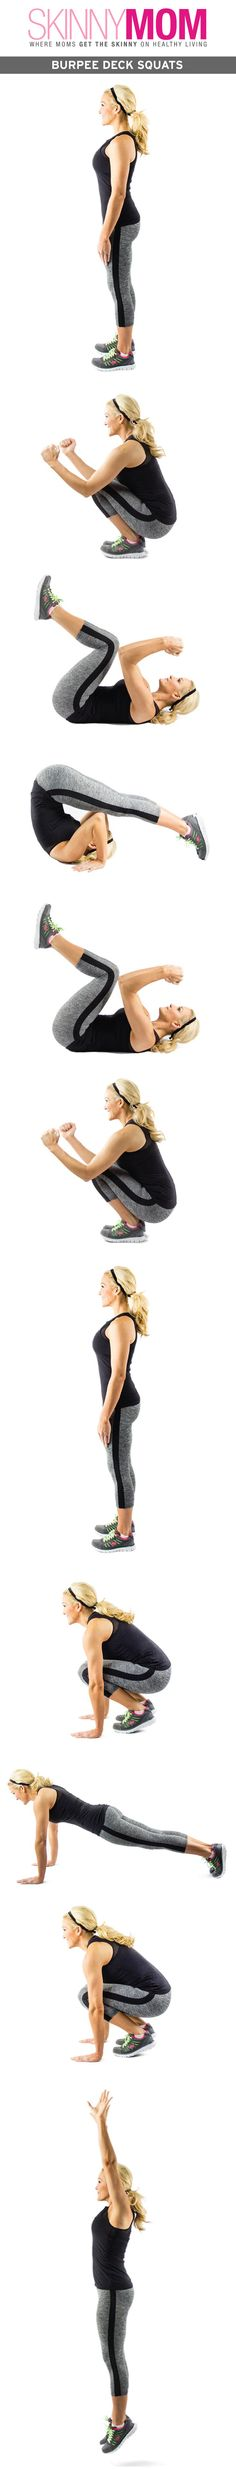 How about these Burpee Deck Squats? Do you have it in you?